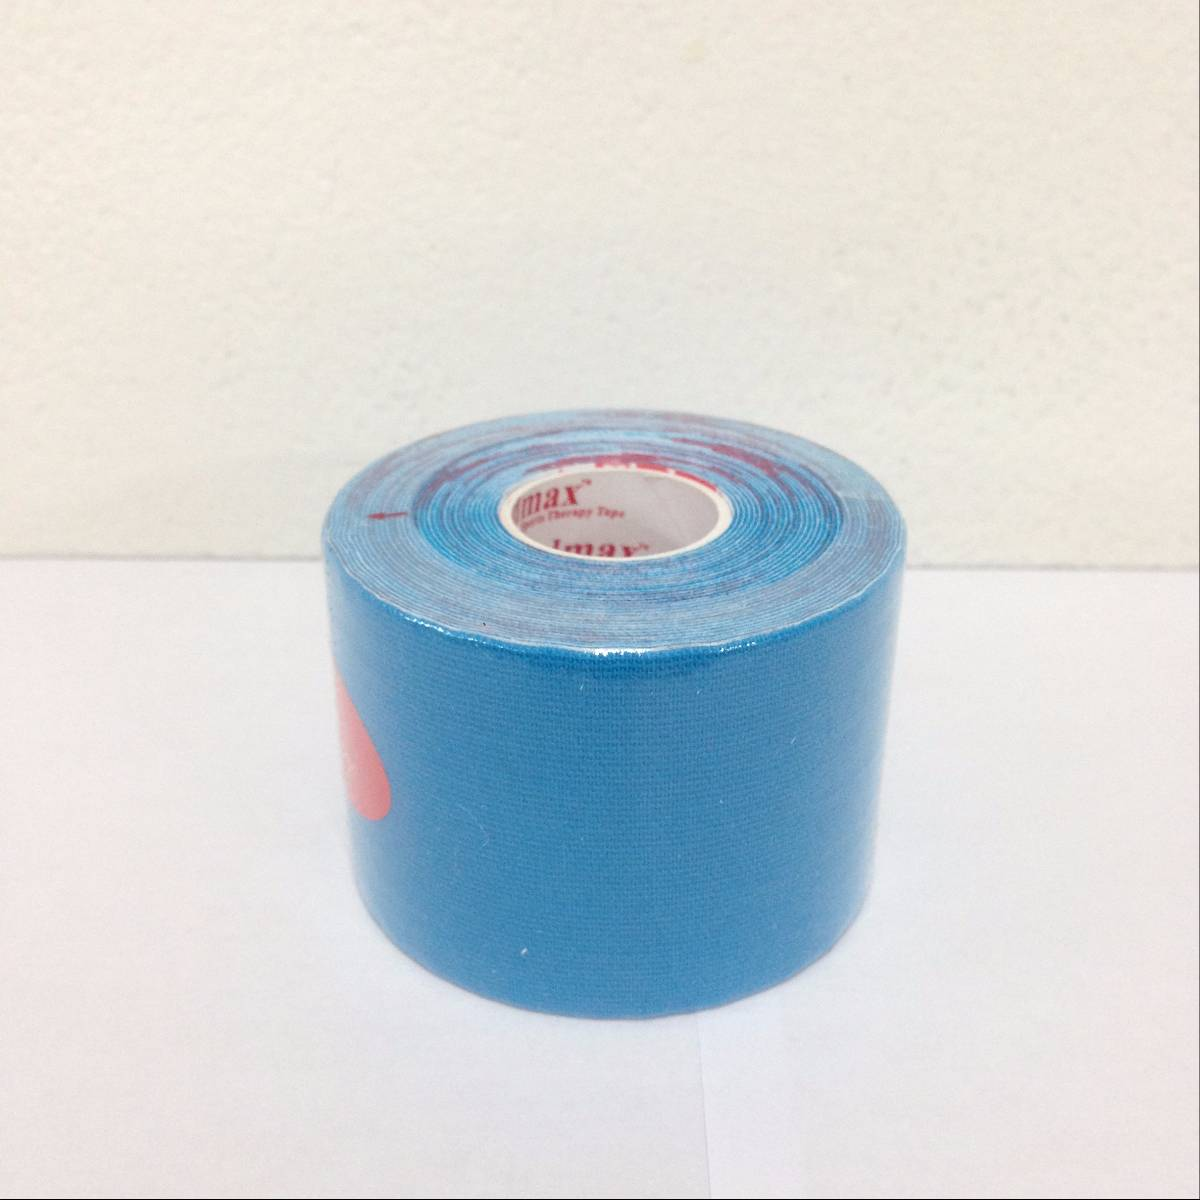 Kindmax Therapy Tape/kinesiology Tape2